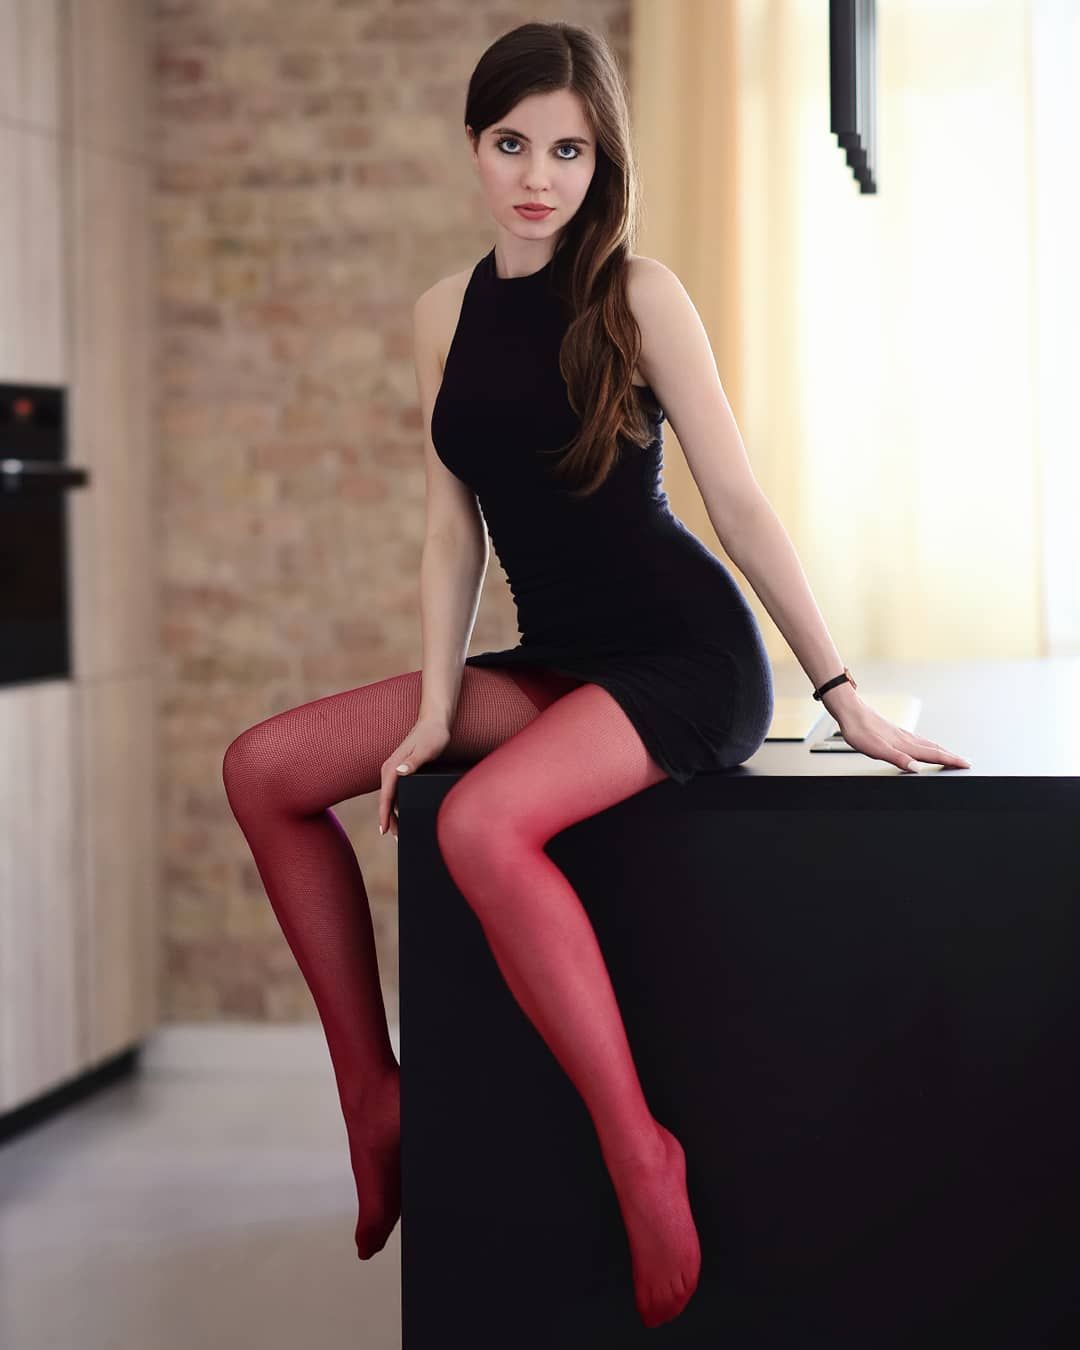 Does vancouver bc pantyhose and nylon models opinion